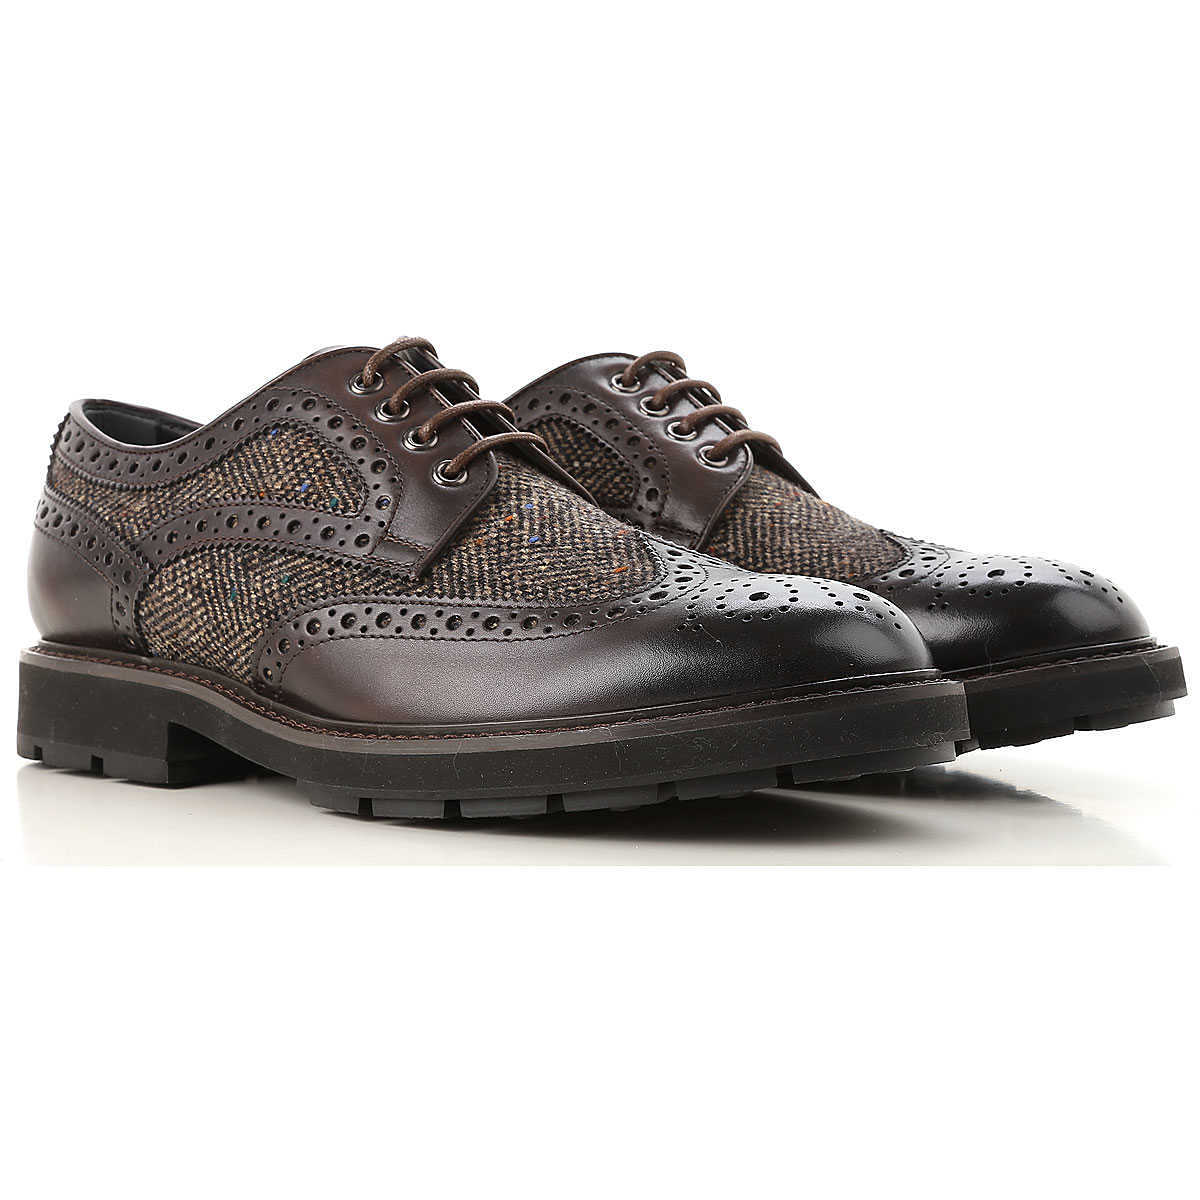 Tods Lace Up Shoes for Men Oxfords Derbies and Brogues On Sale - GOOFASH